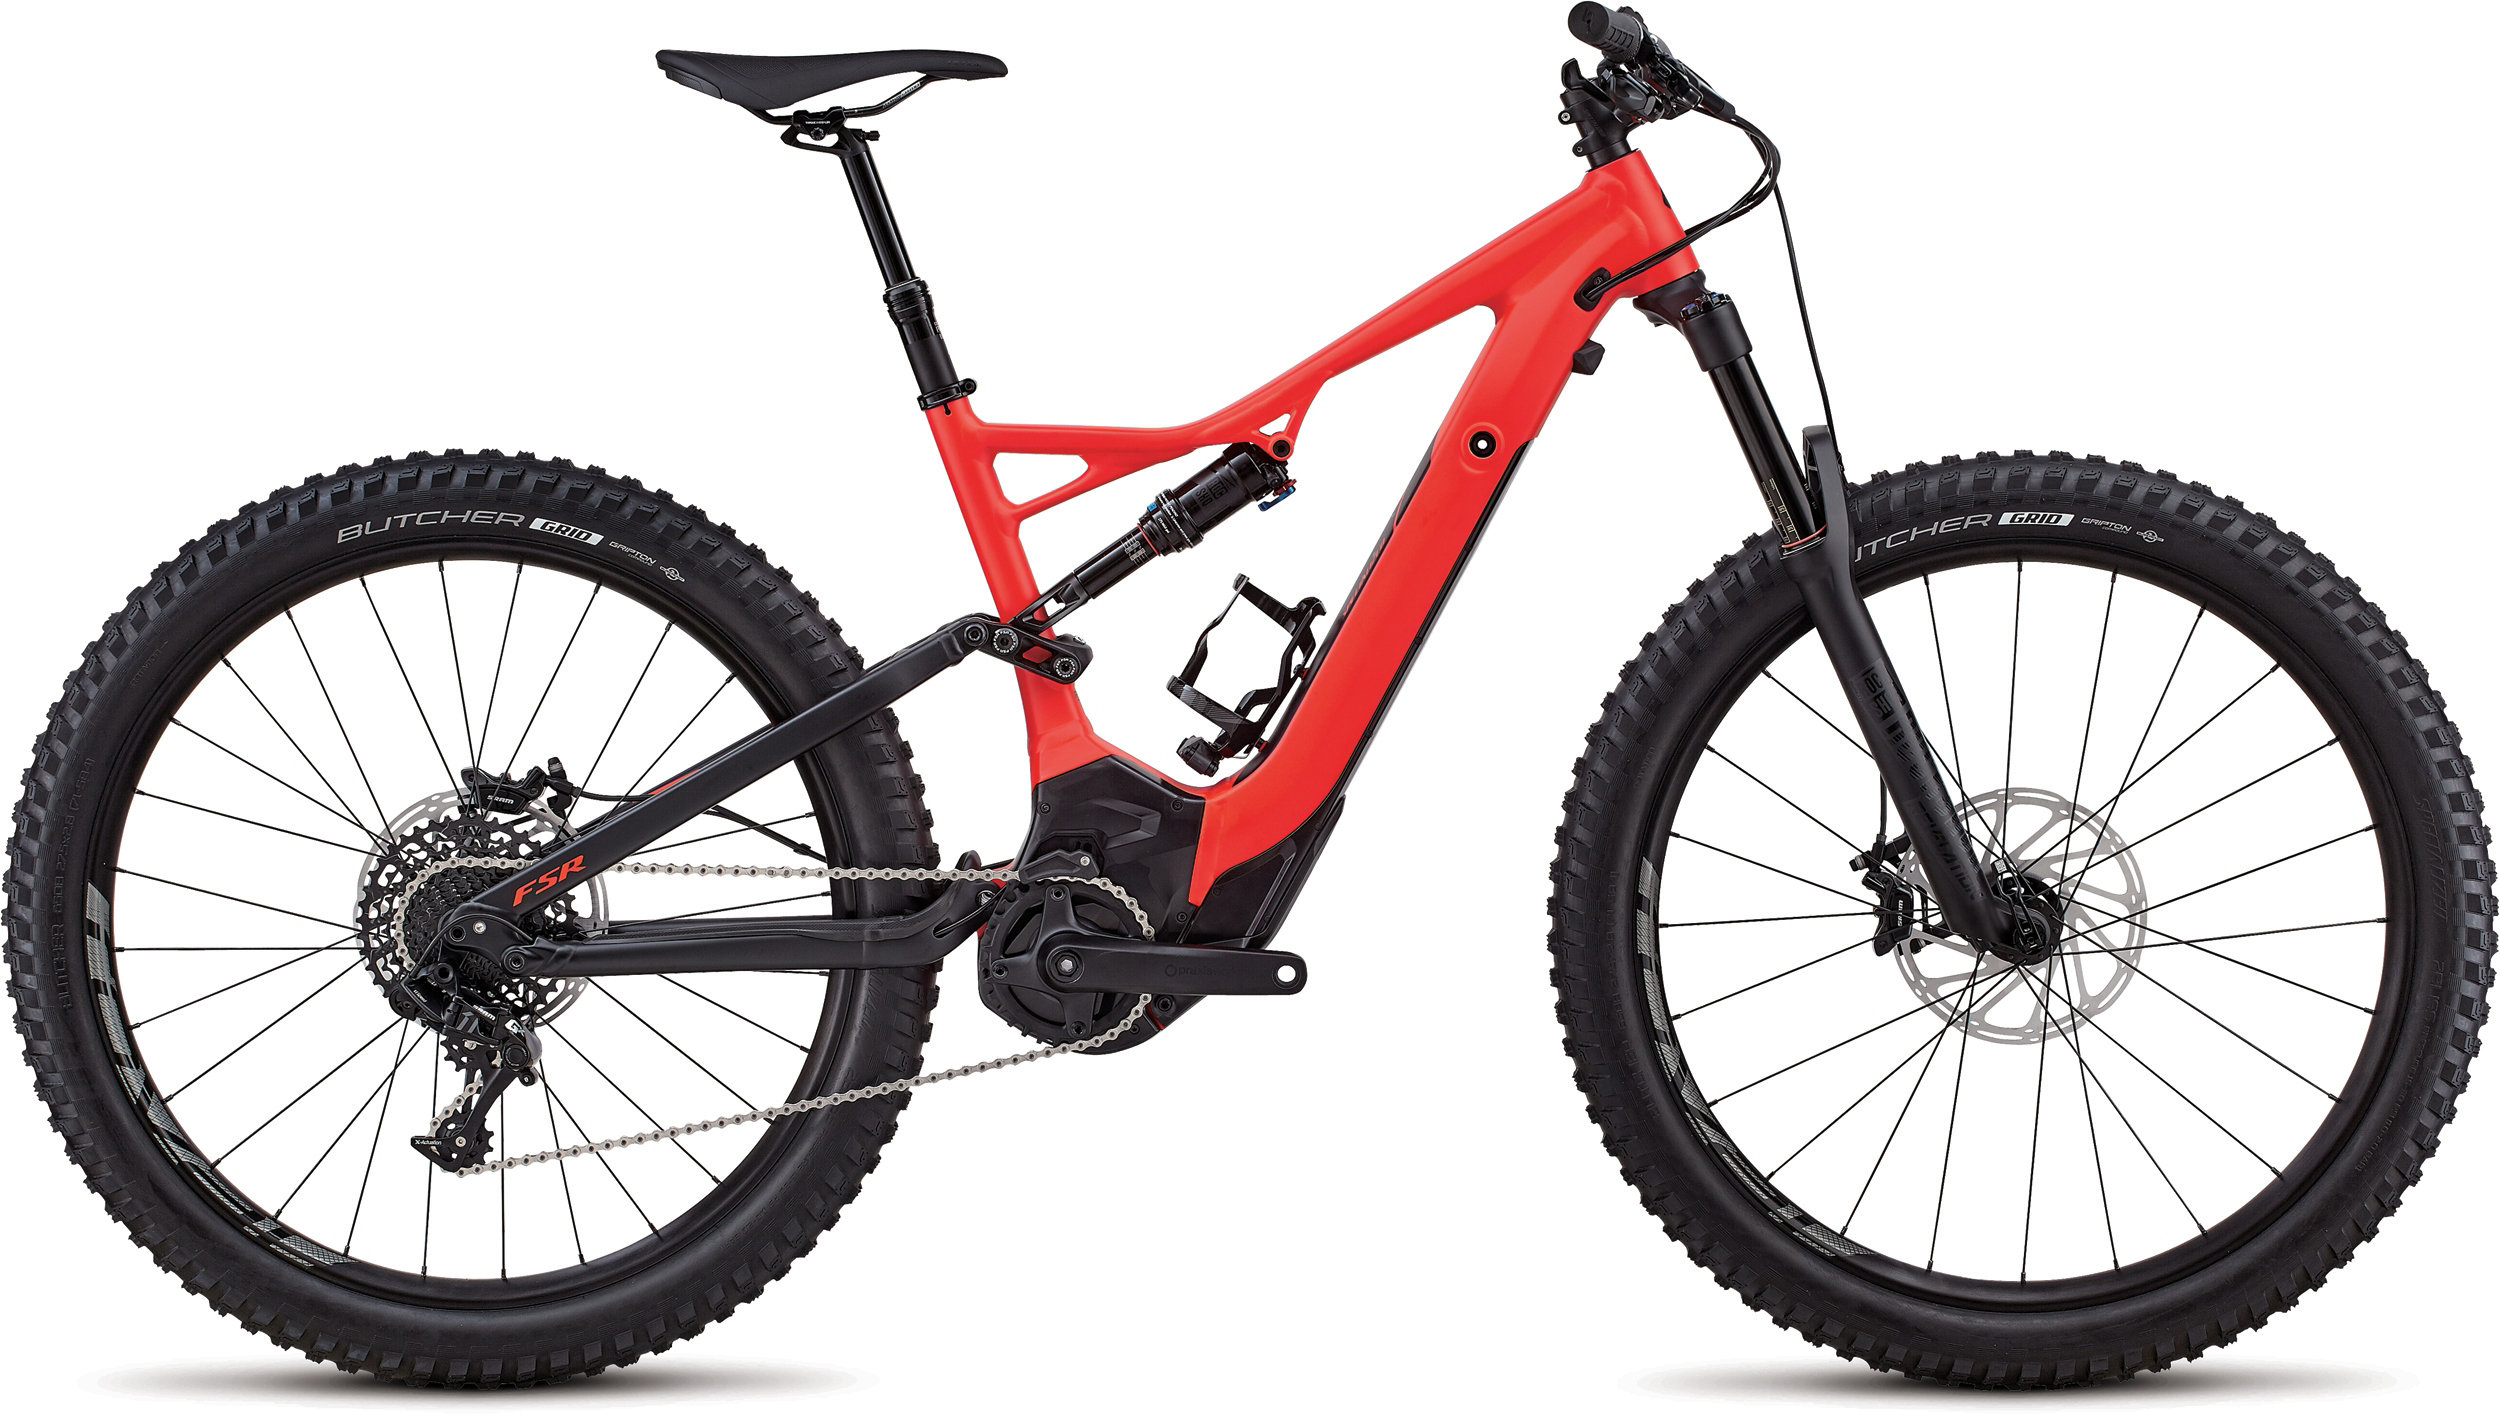 Specialized Men´s Turbo Levo FSR Comp 6Fattie/29 RH M - Specialized Men´s Turbo Levo FSR Comp 6Fattie/29 RH M